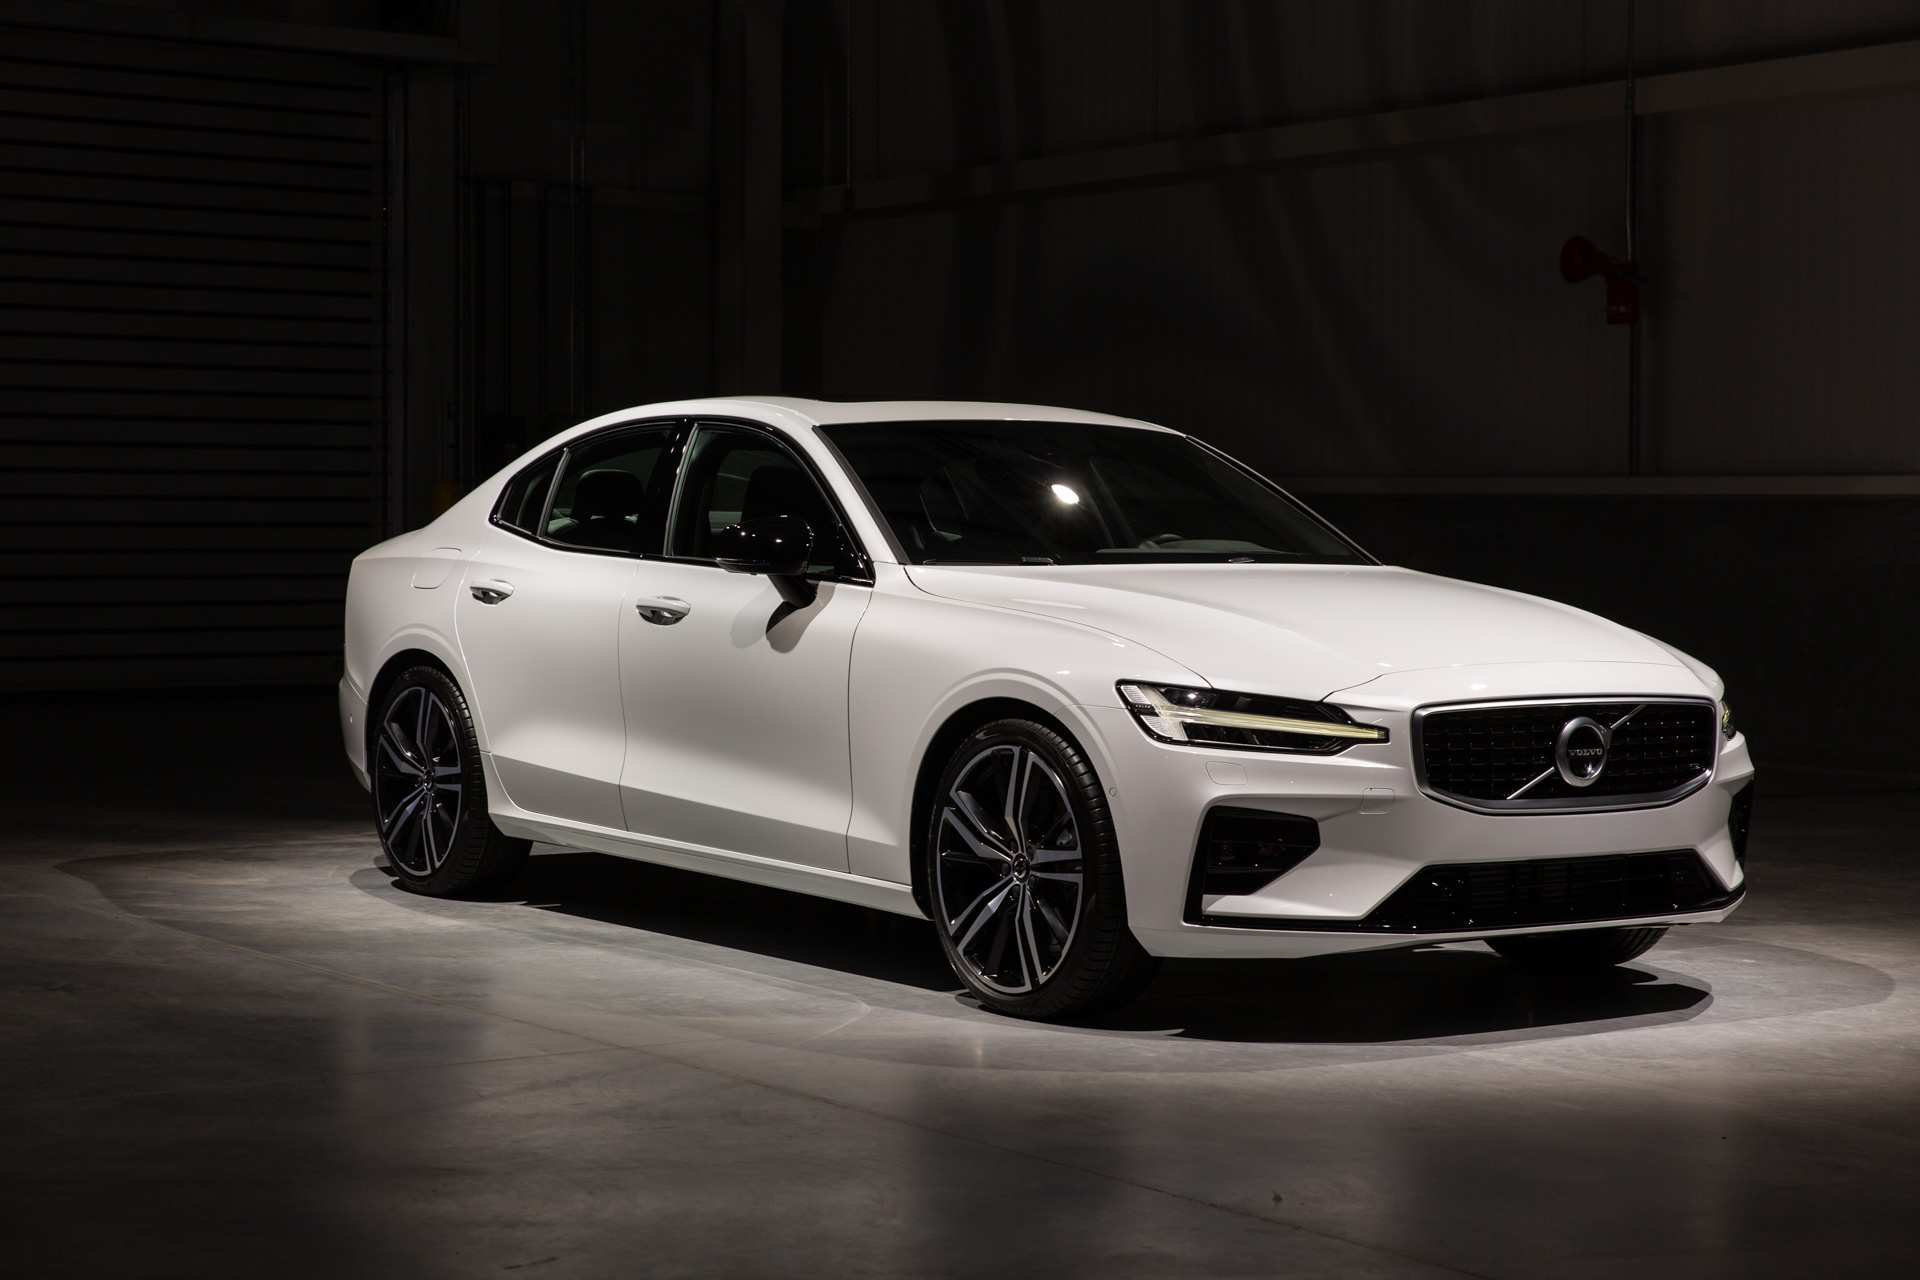 36 New 2019 Volvo 860 Interior Price Design And Review